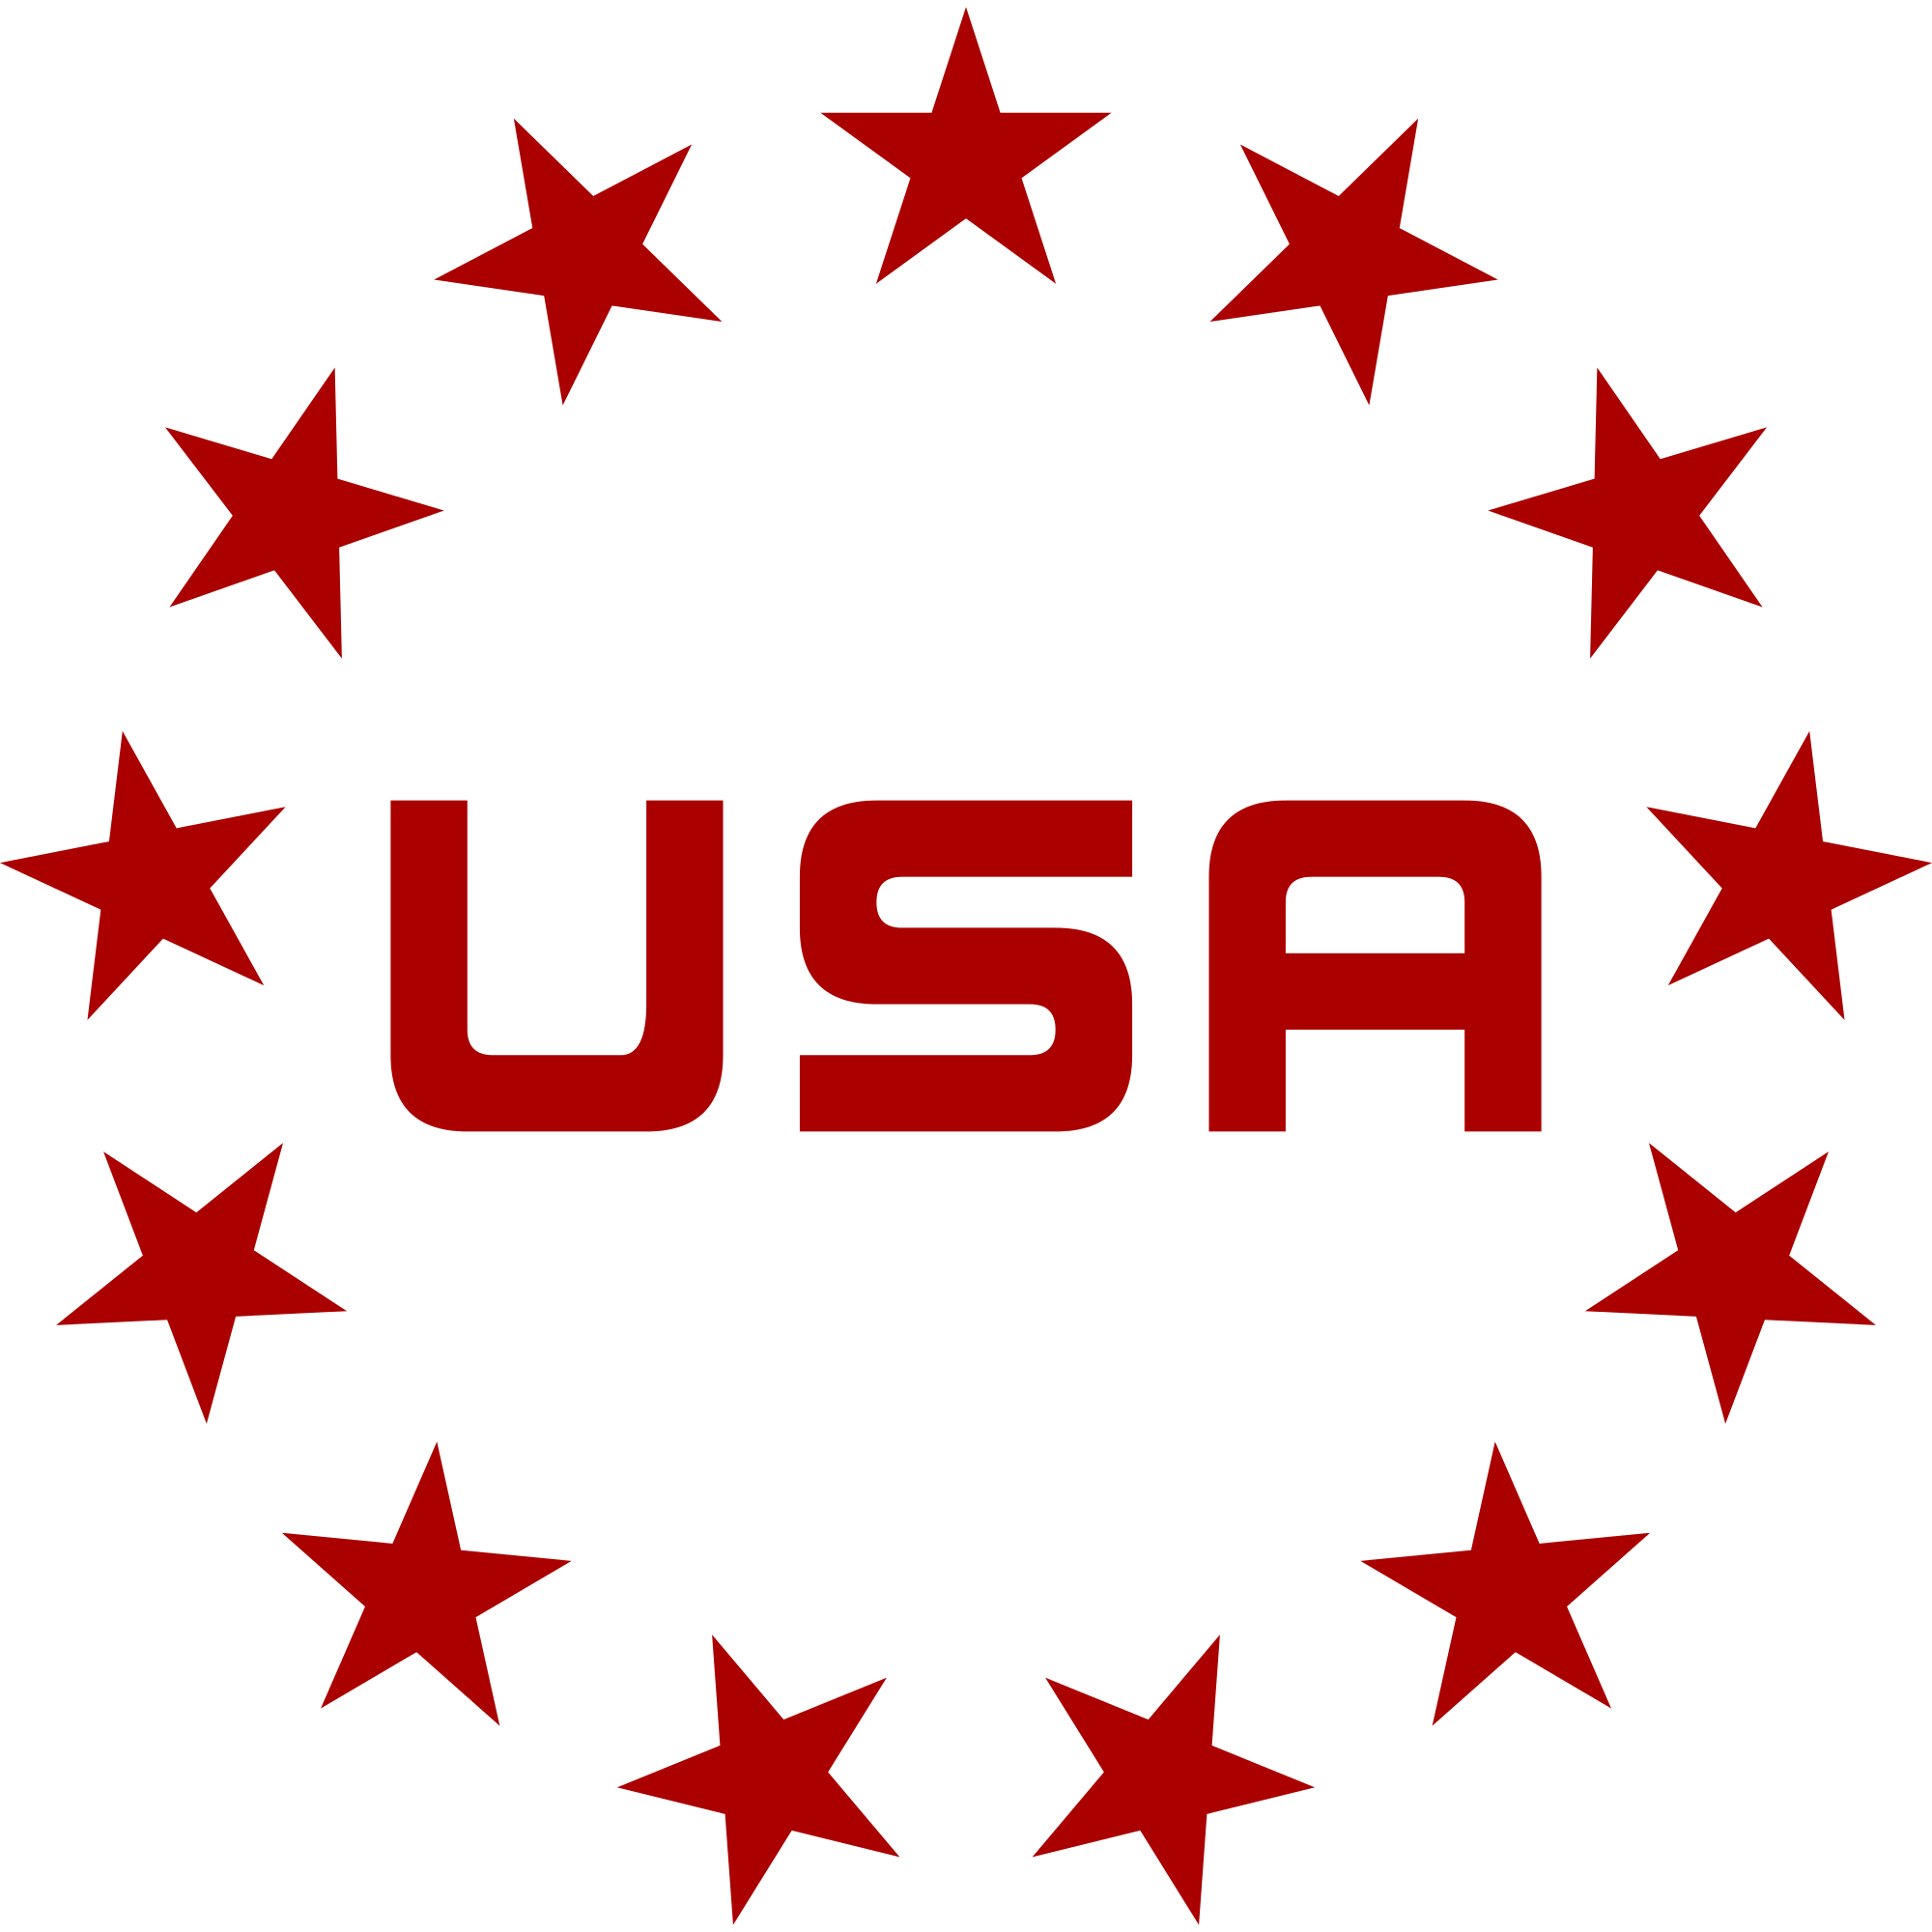 clip art royalty free stock Usa svg red. File wag logo wikimedia